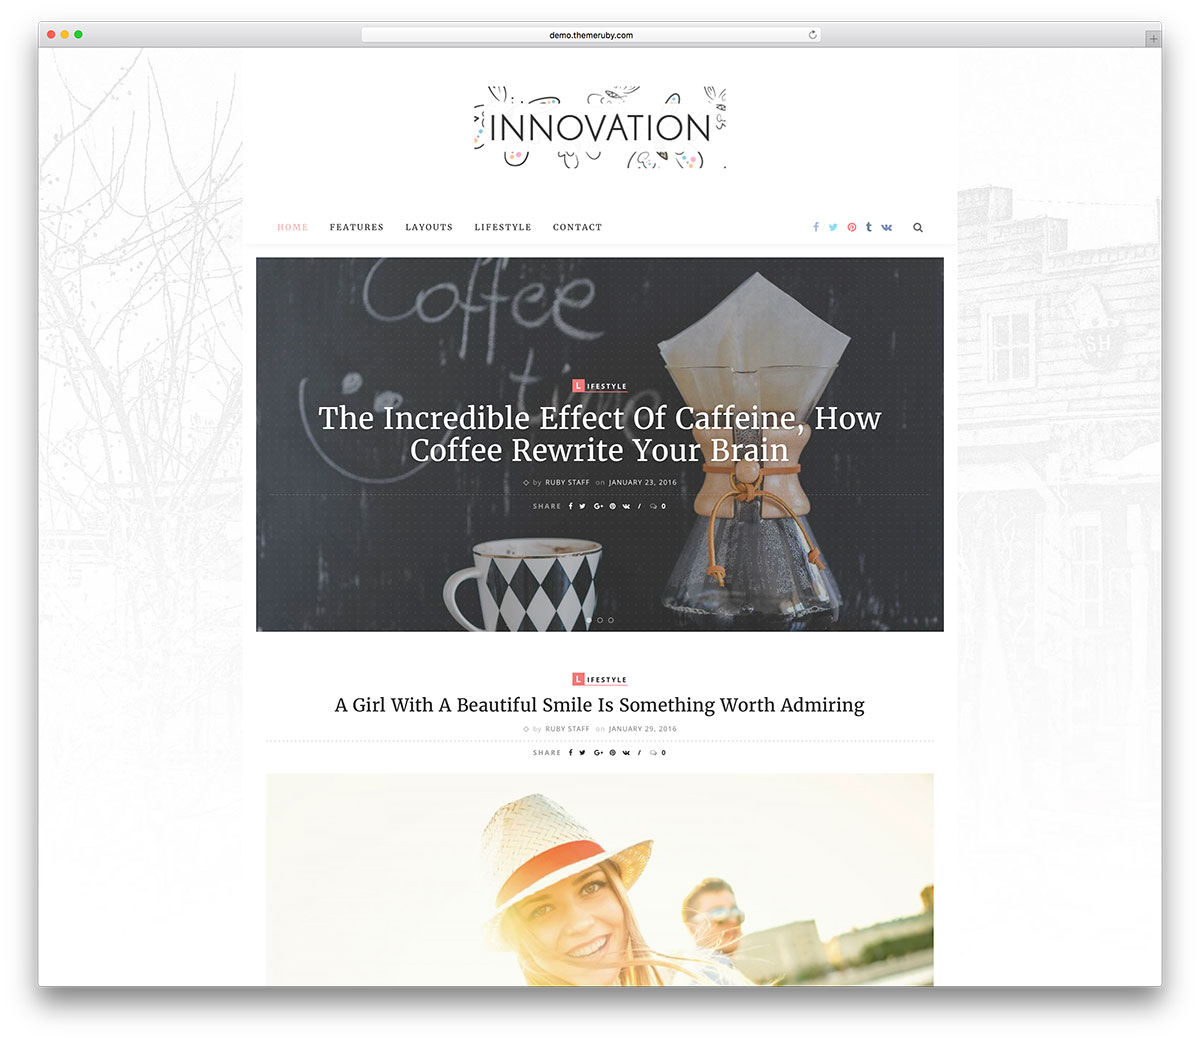 innovation-lifestyle-wordpress-blog-template&quot; width=&quot;1200&quot; height=&quot;1041&quot; data-lazy-srcset=&quot;https://webypress.fr/wp-content/uploads/2018/12/1546046198_921_40-meilleurs-thèmes-WordPress-Blog-personnel-2018.jpg 1200w, https://cdn.colorlib.com/wp/wp-content/uploads/sites/2/innovation-lifestyle-wordpress-blog-template-300x260.jpg 300w, https://cdn.colorlib.com/wp/wp-content/uploads/sites/2/innovation-lifestyle-wordpress-blog-template-768x666.jpg 768w, https://cdn.colorlib.com/wp/wp-content/uploads/sites/2/innovation-lifestyle-wordpress-blog-template-1024x888.jpg 1024w&quot; data-lazy-sizes=&quot;(max-width: 1200px) 100vw, 1200px&quot; data-lazy-src=&quot;https://webypress.fr/wp-content/uploads/2018/12/1546046198_921_40-meilleurs-thèmes-WordPress-Blog-personnel-2018.jpg?is-pending-load=1&quot; srcset=&quot;data:image/gif;base64,R0lGODlhAQABAIAAAAAAAP///yH5BAEAAAAALAAAAAABAAEAAAIBRAA7&quot;/&gt;</p> <p><noscript><img class=